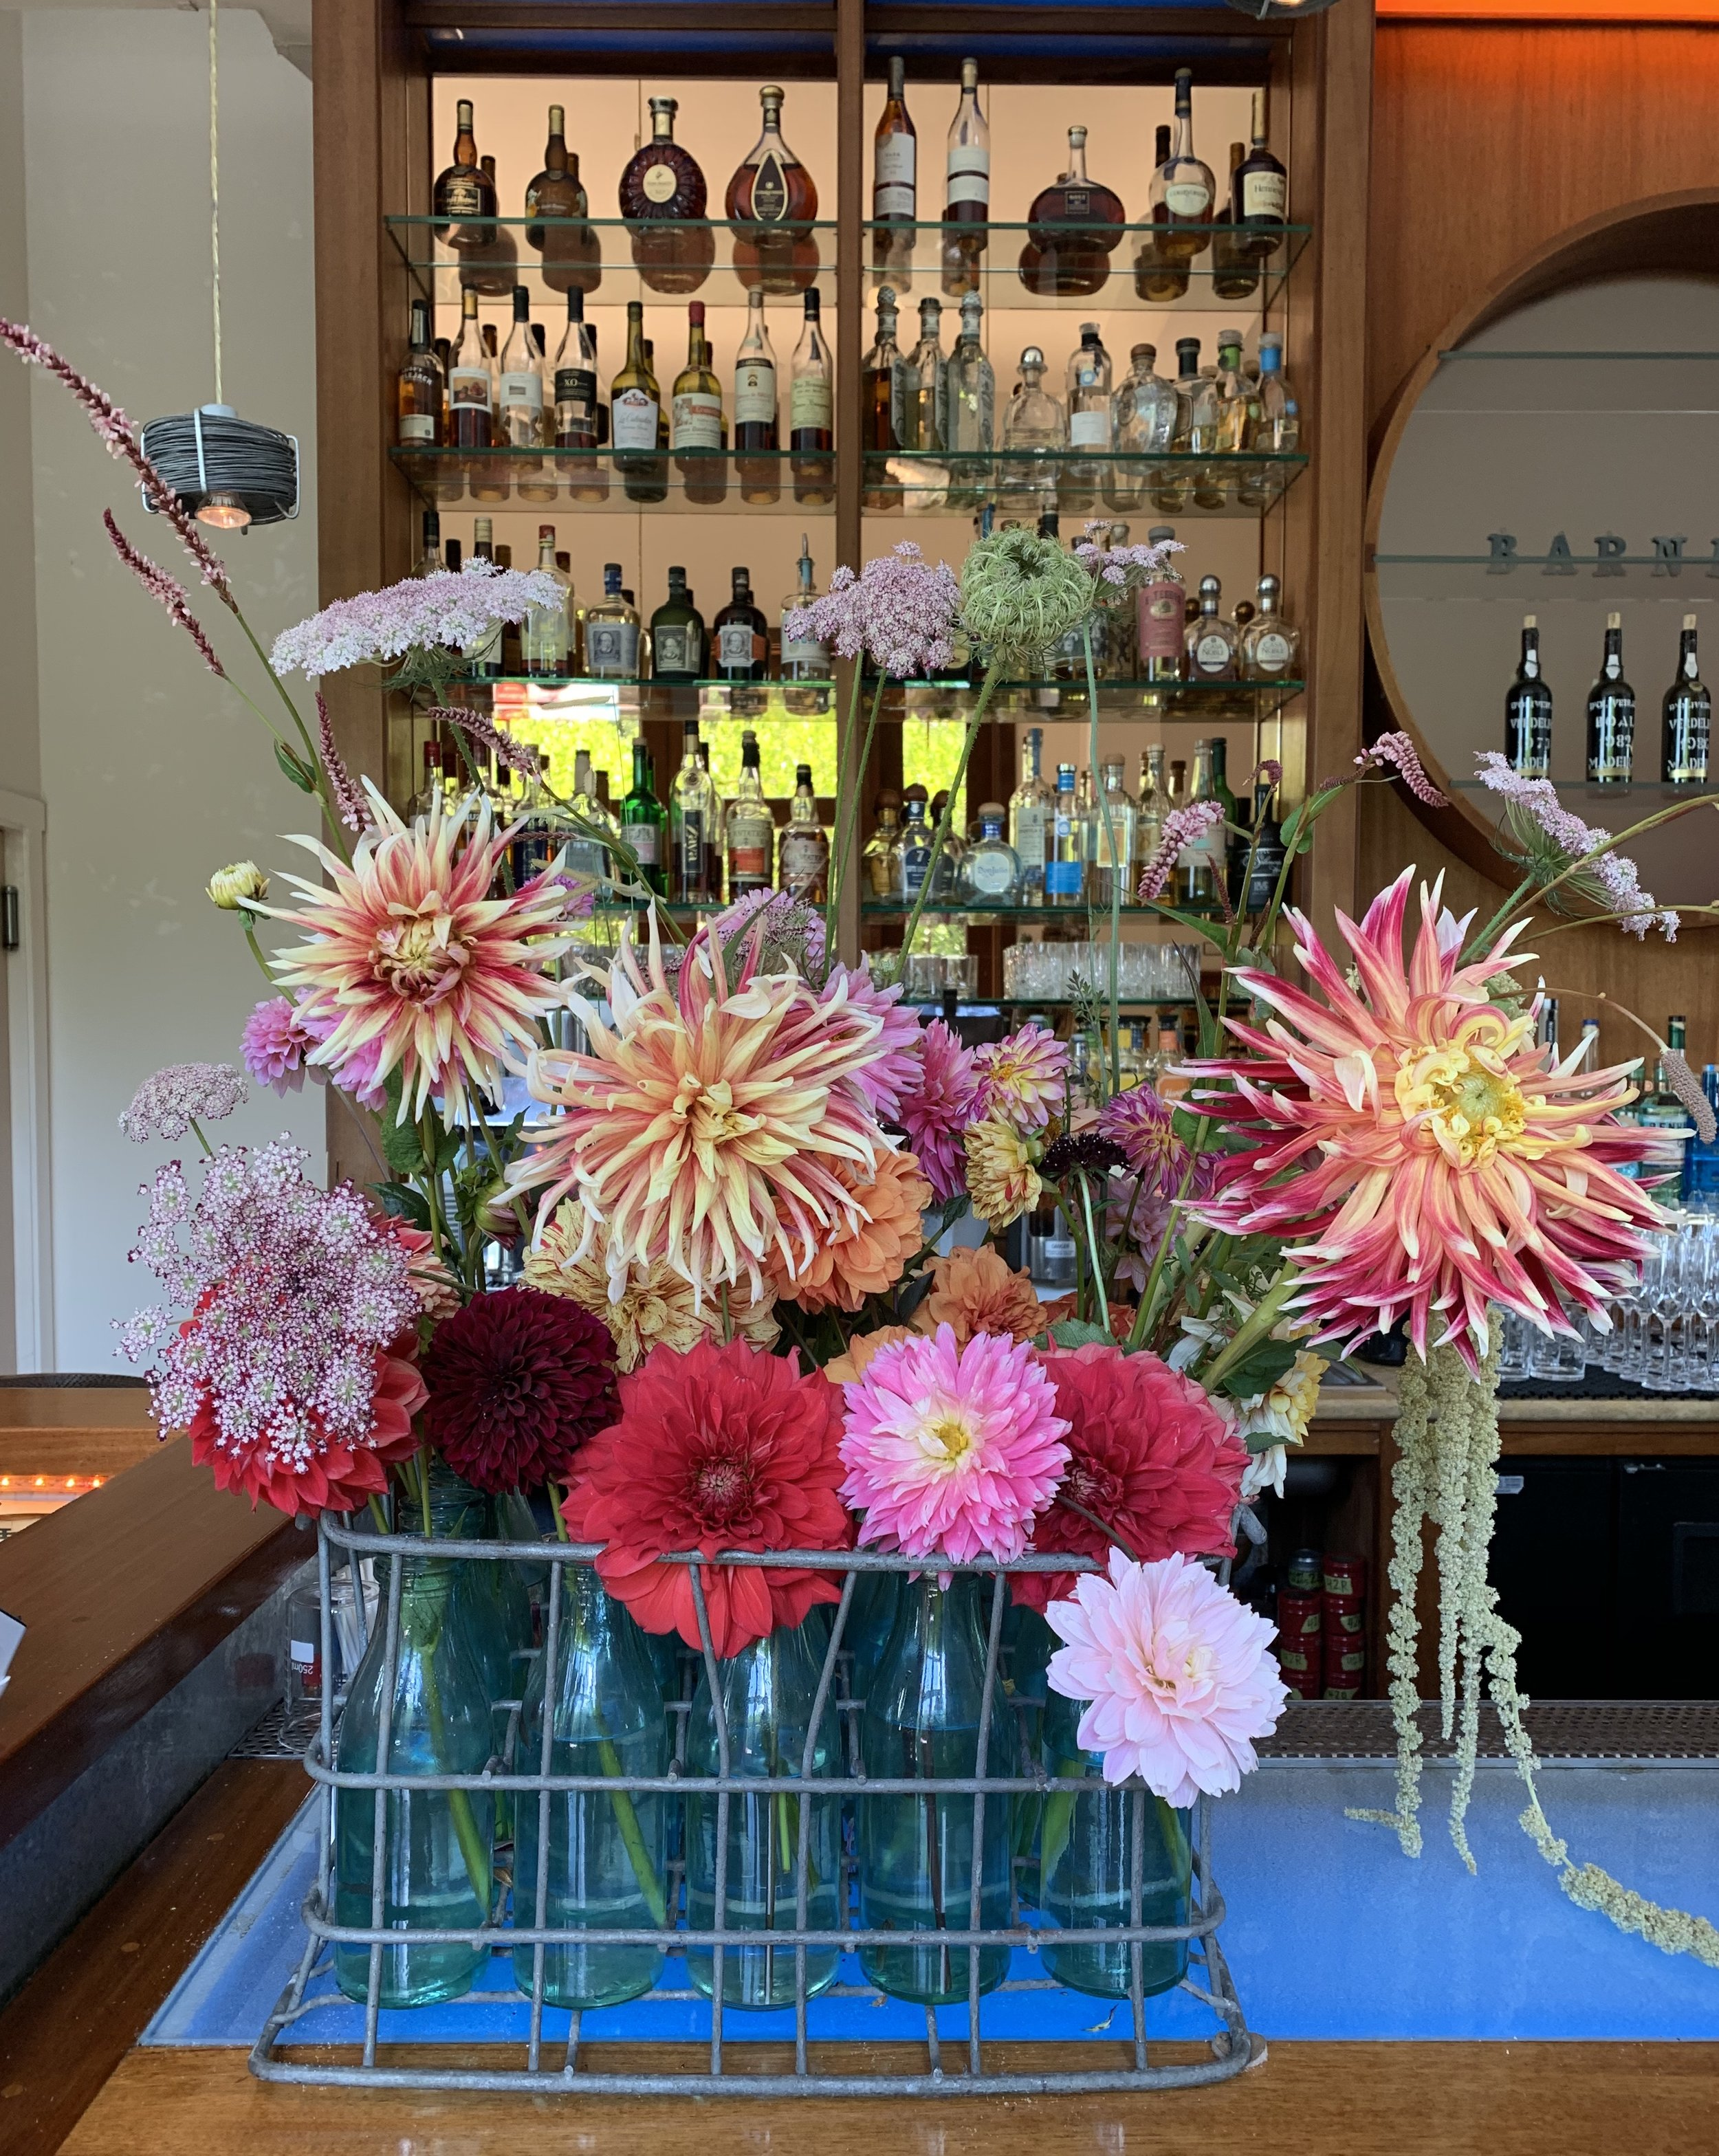 dan's dahlias - our seasonal, weekly floral show continues